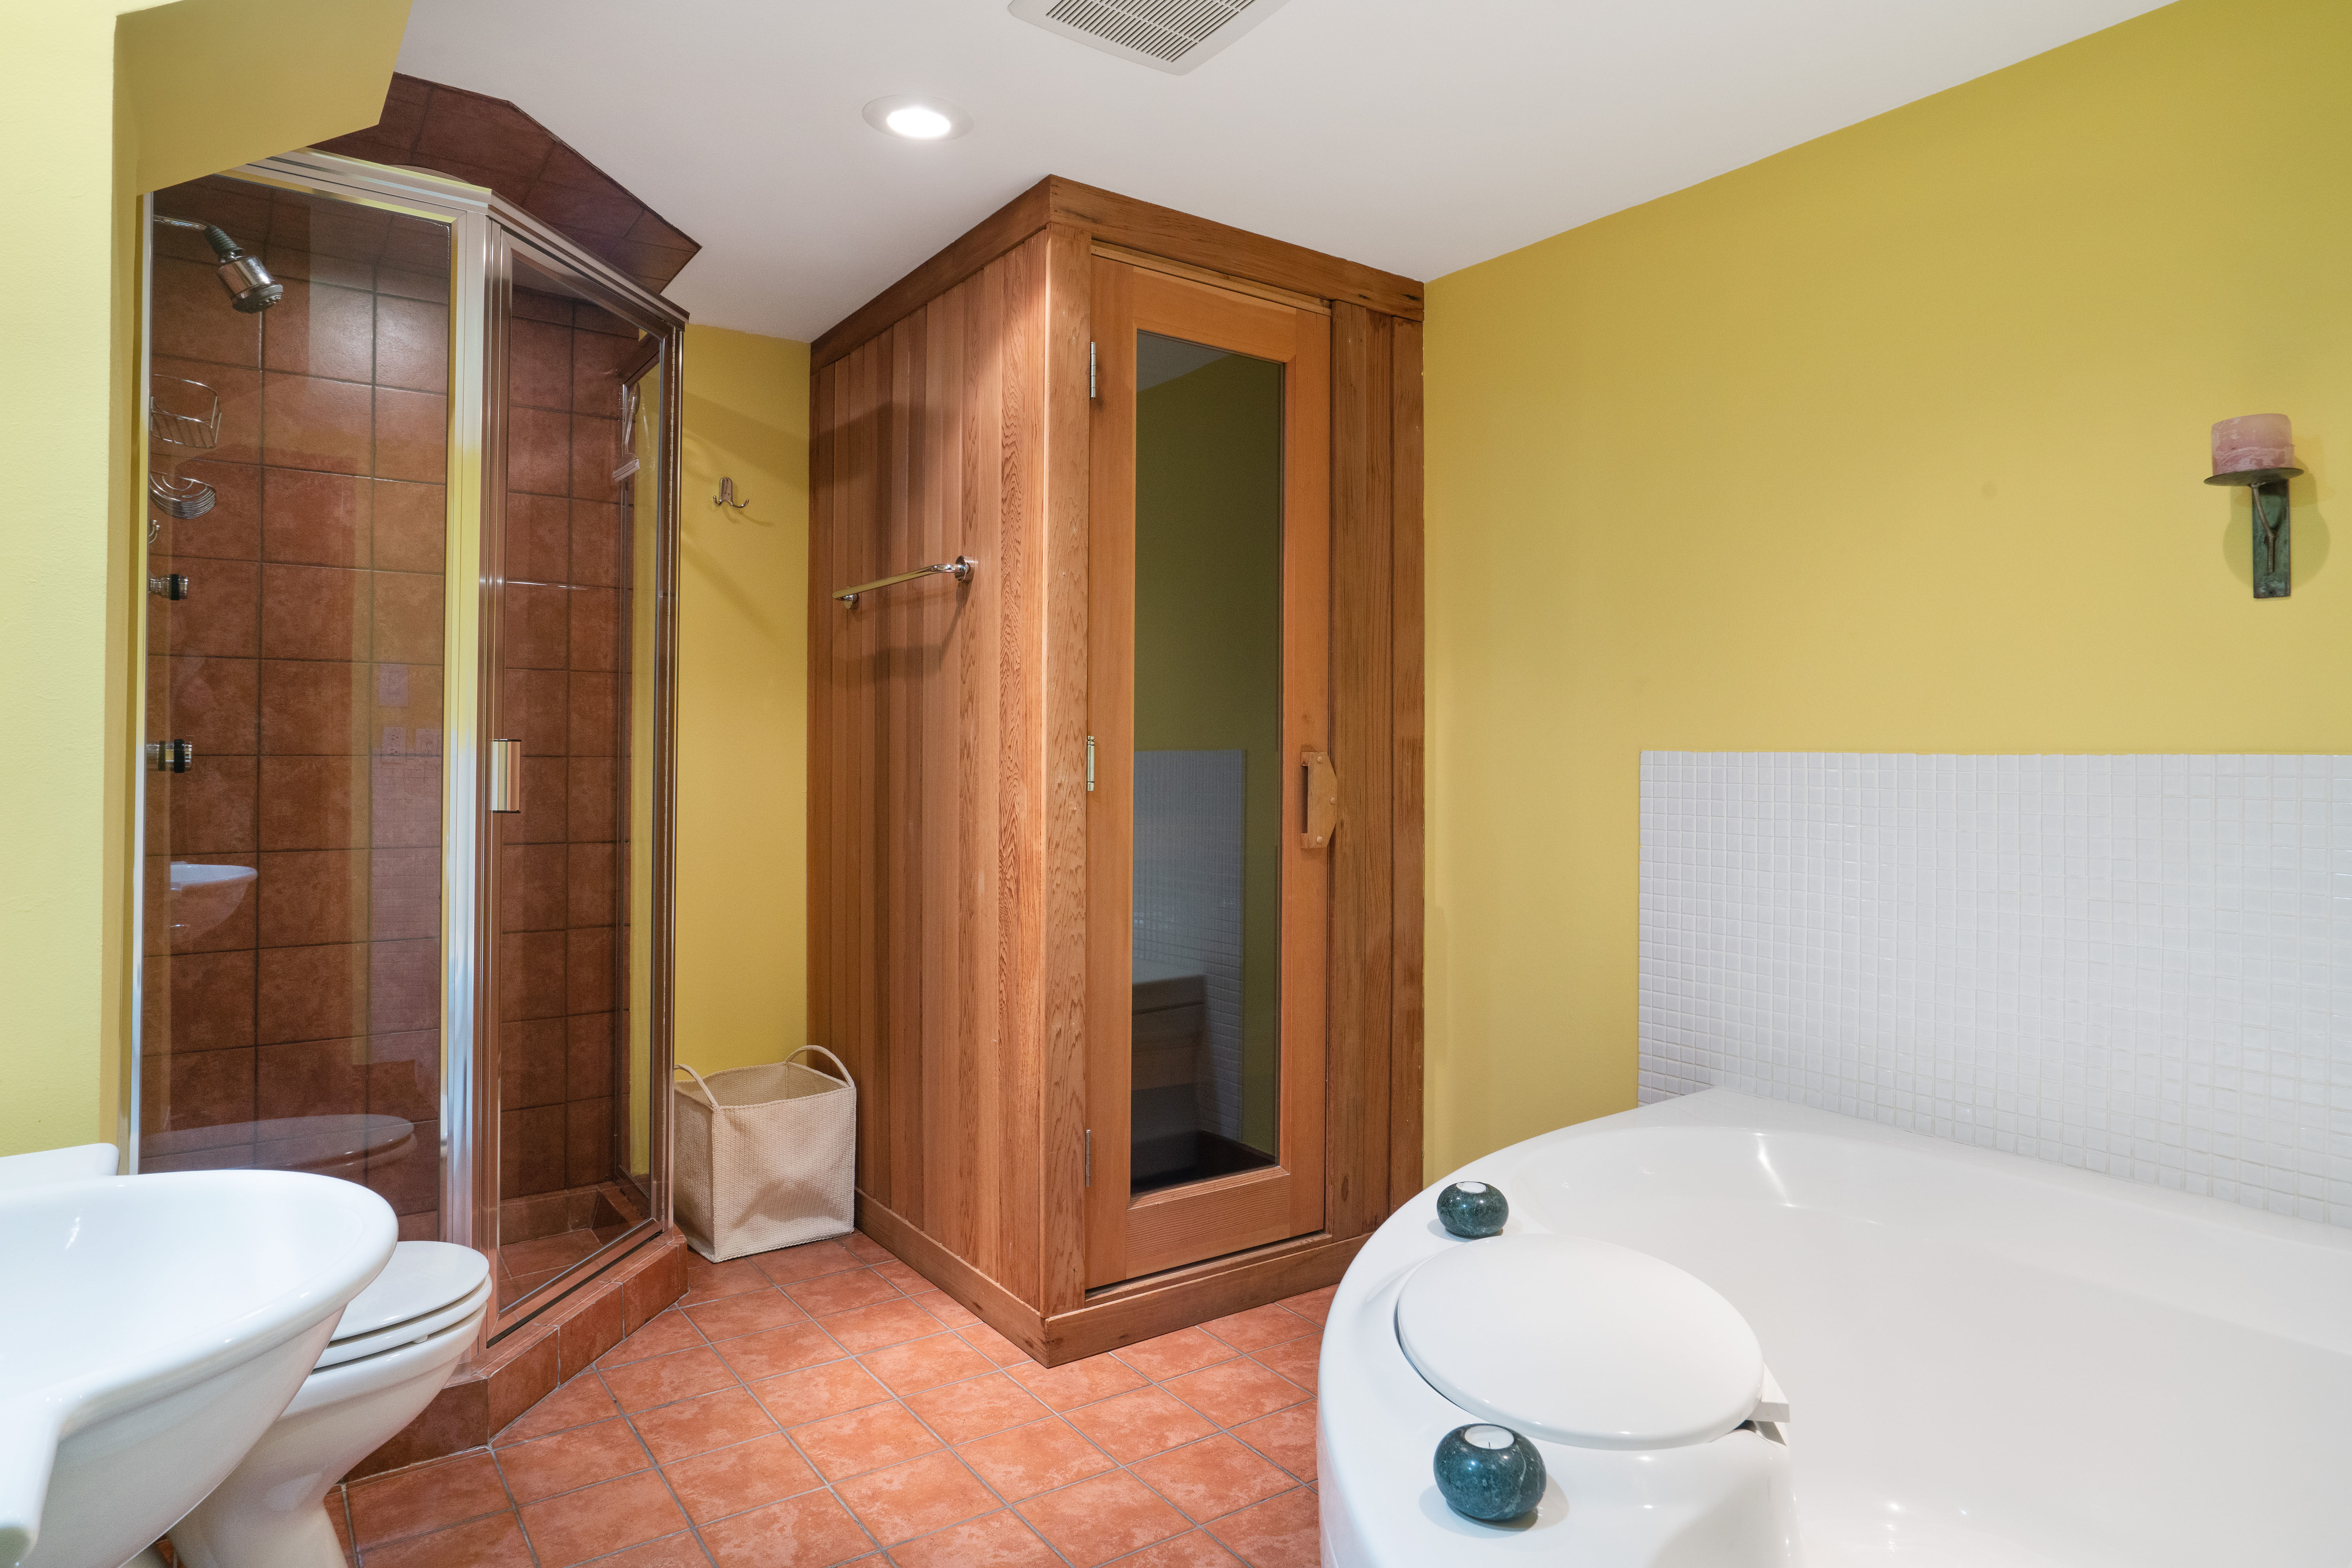 594 2nd St Photo 9 - BROWNSTONER-LISTING-47512a55ccfbbeb19b0a8fb315f62163